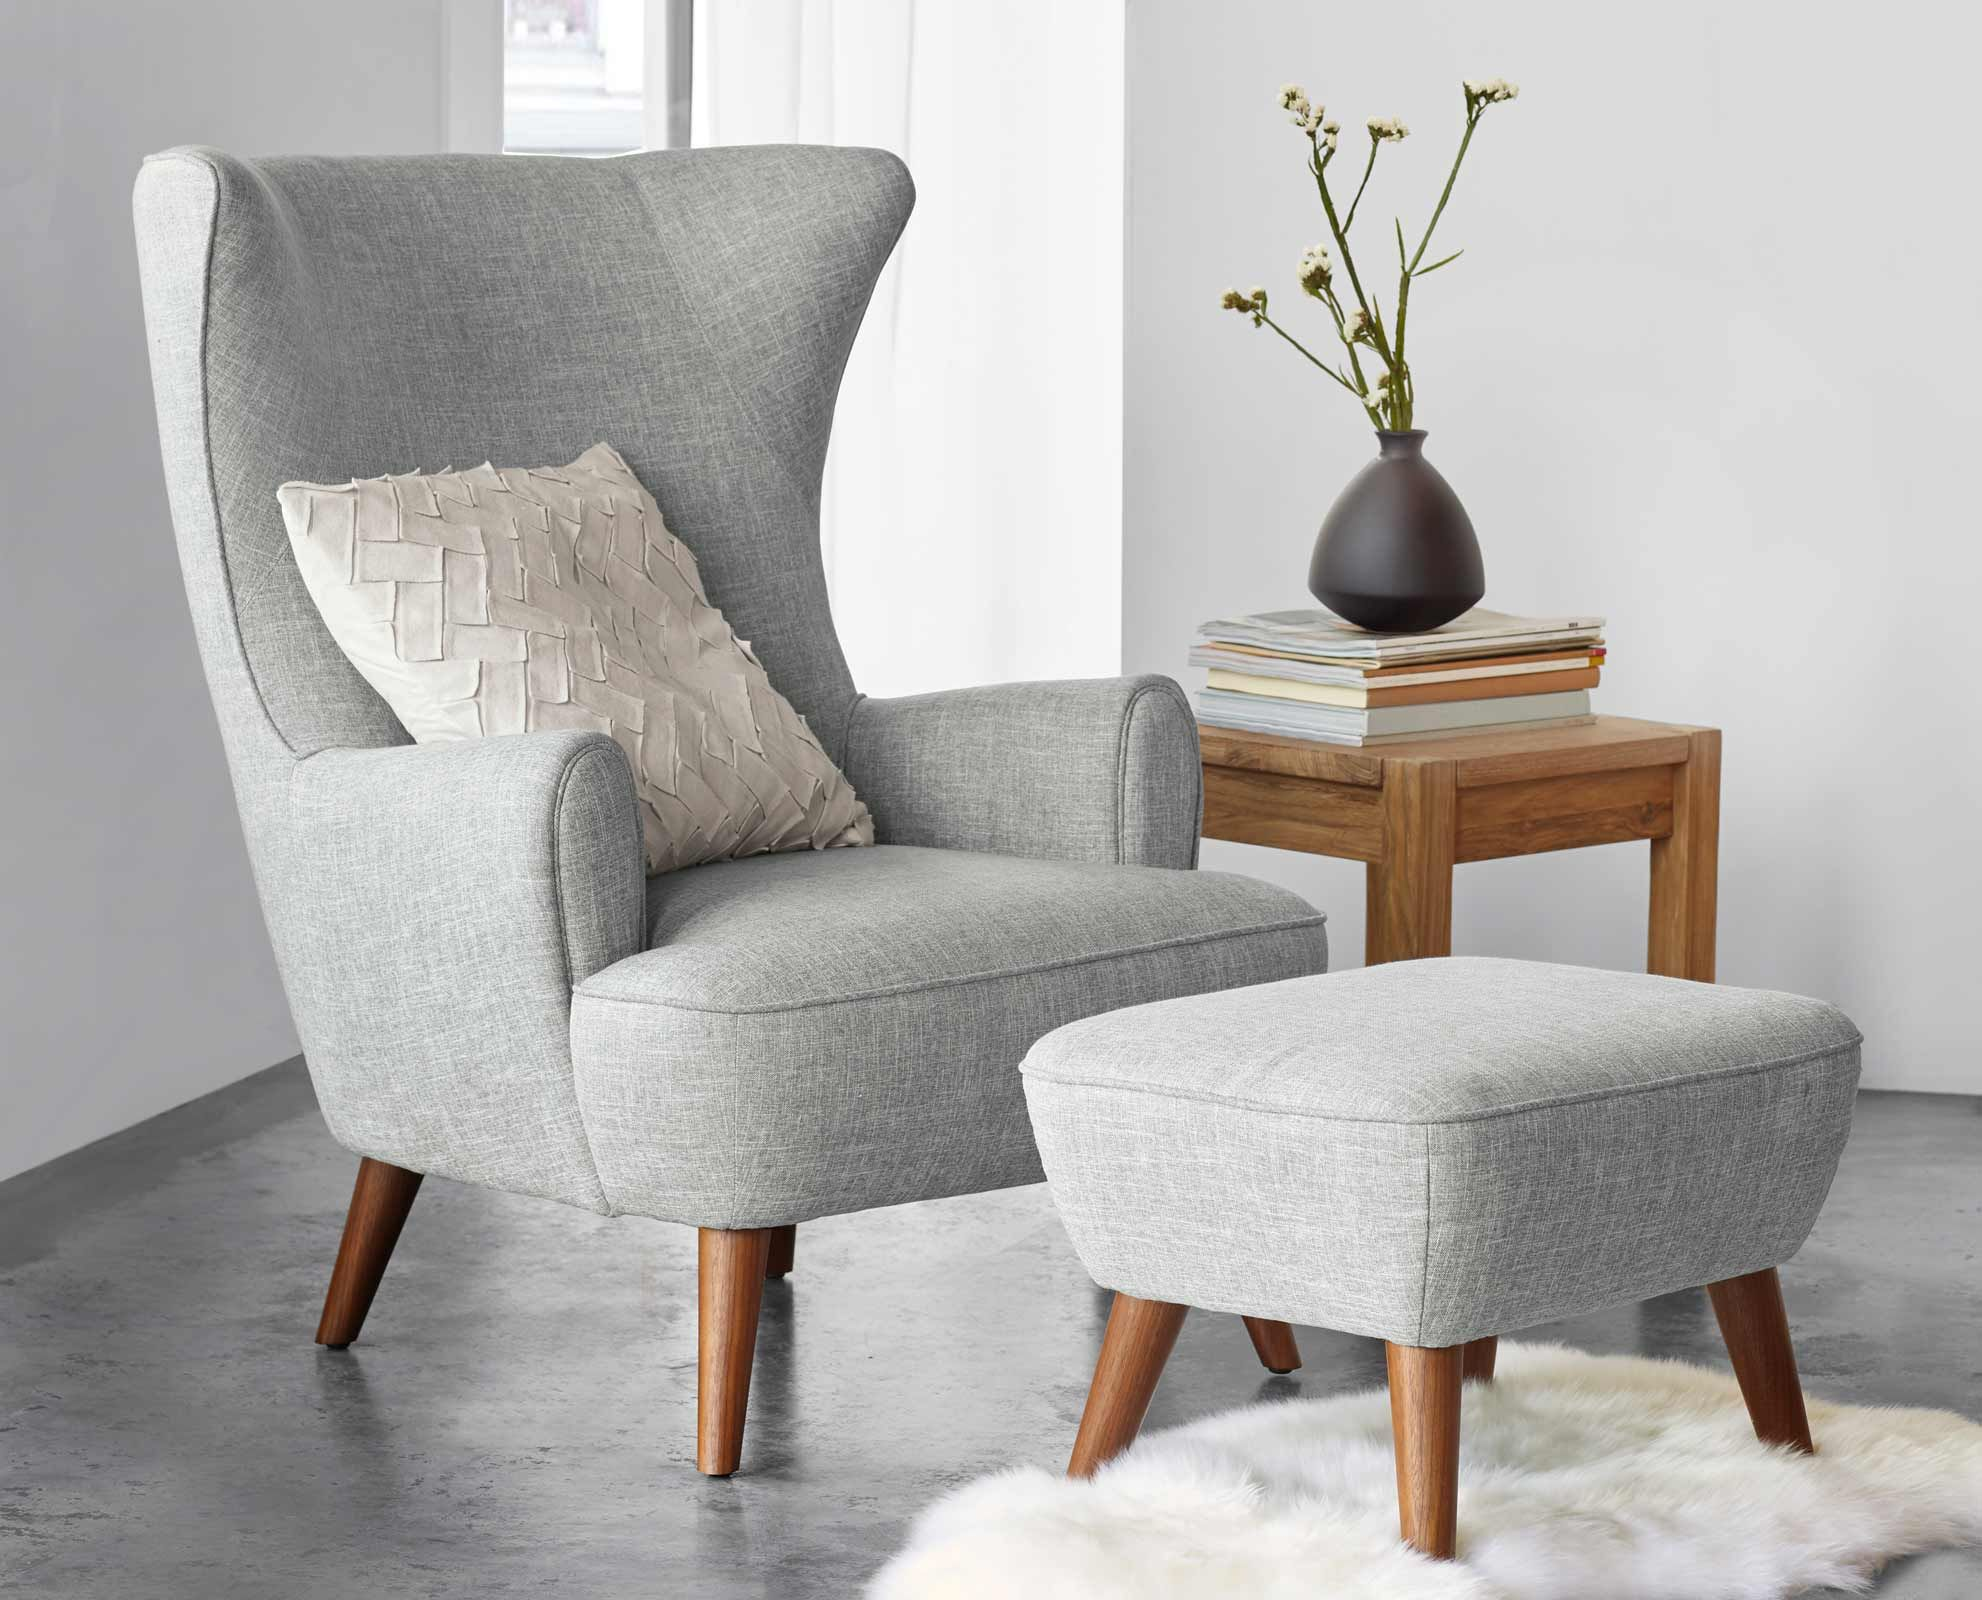 Dania Chairs Dania With An Overall Classic Profile The Lines Of The